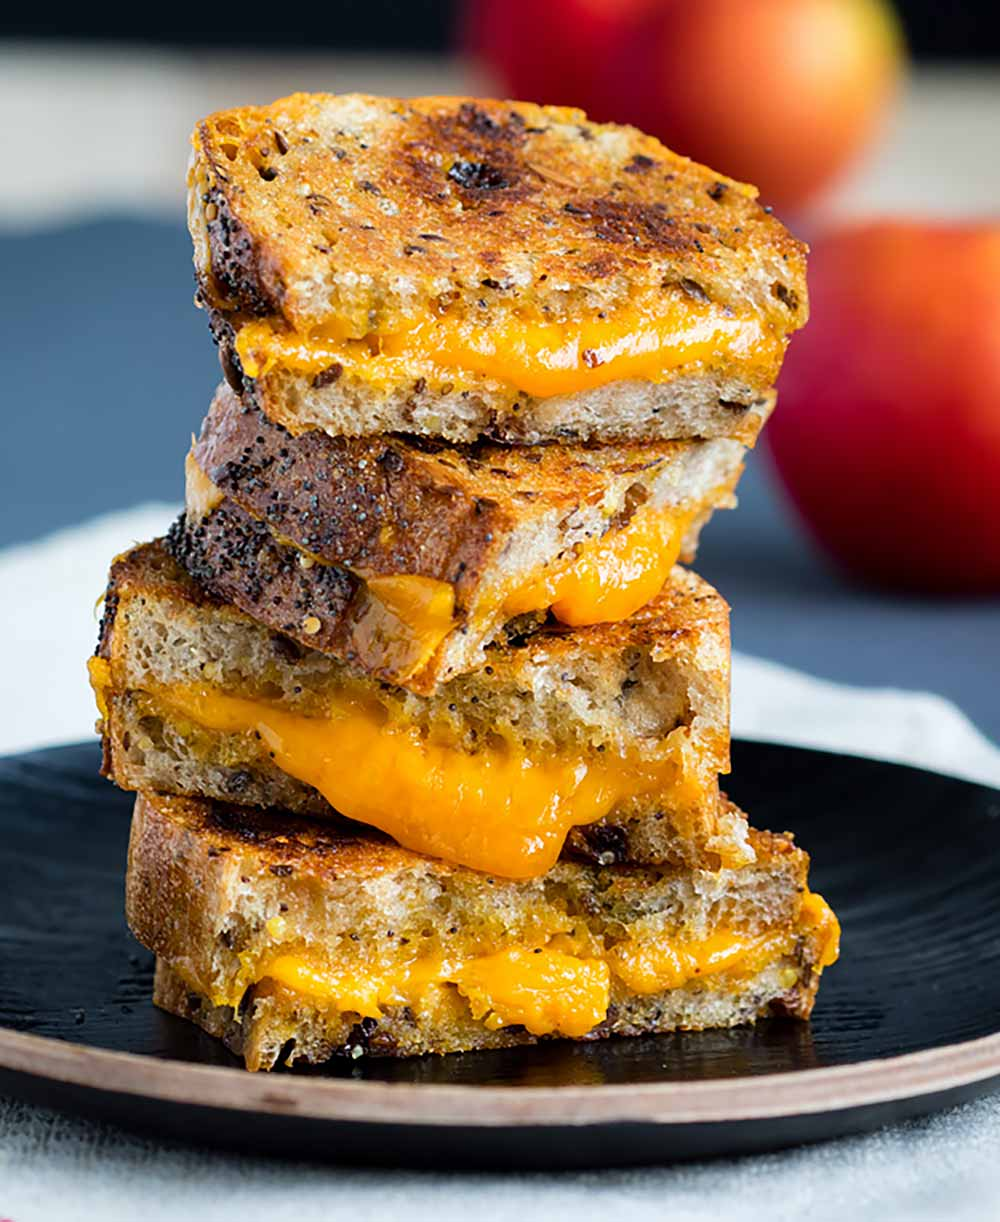 21 Mind-Blowing Grilled Cheese Sandwich Recipes: Raisin Bread Grilled Cheese